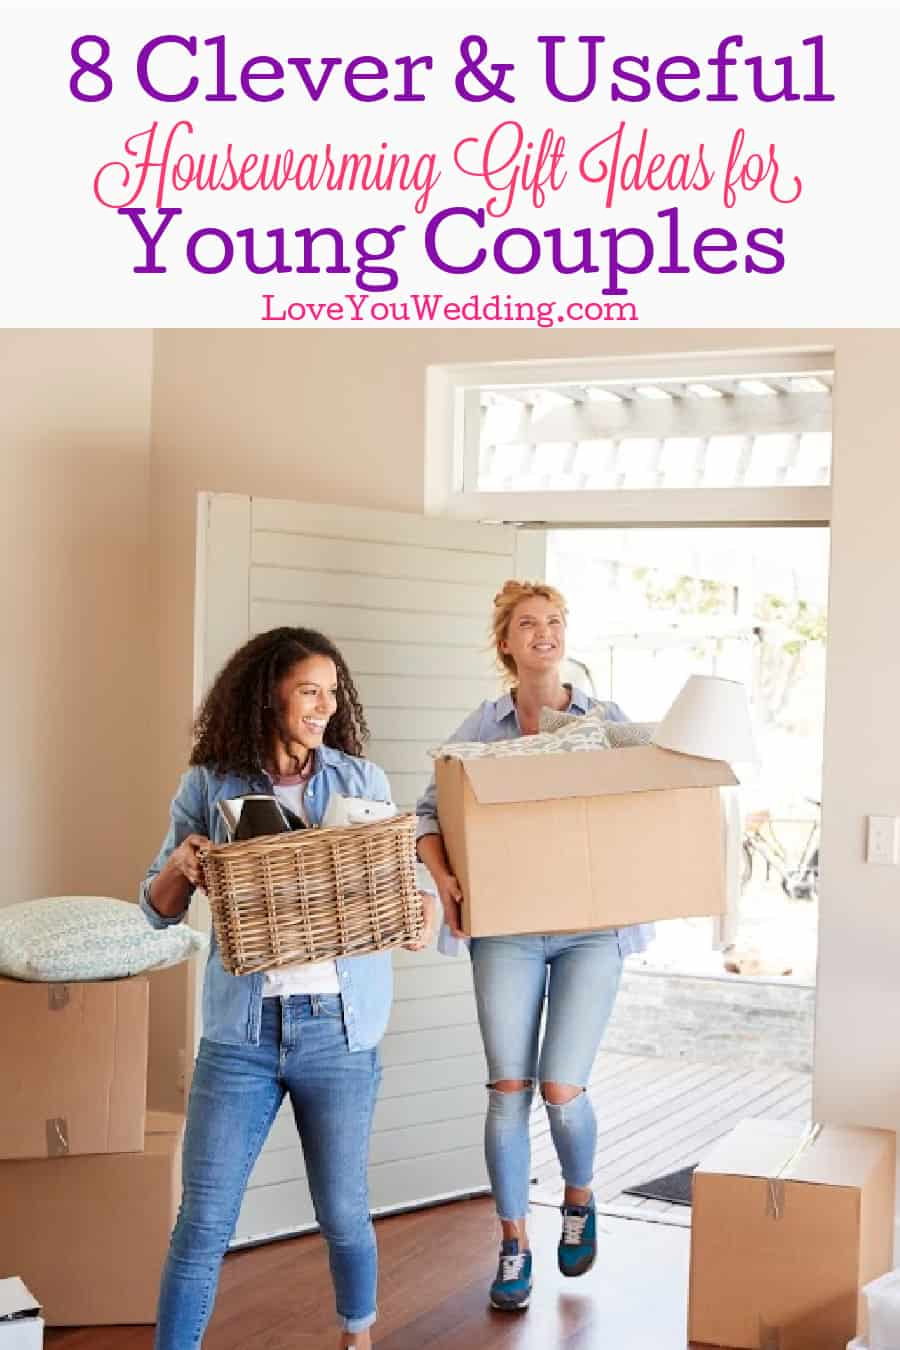 Lesbian women moving into a new home with boxes and baskets